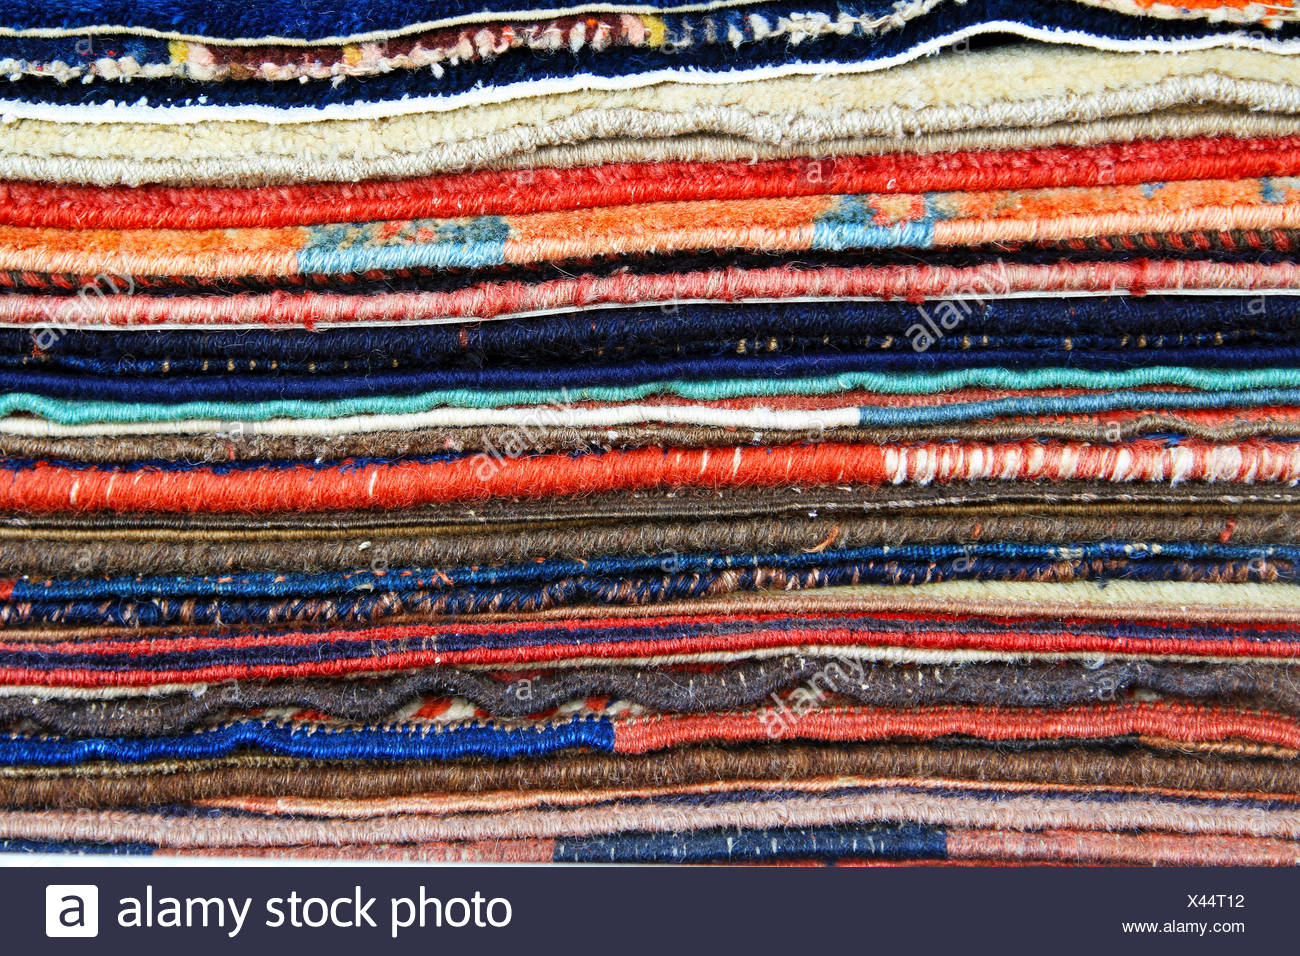 Big pile of colorful carpets and rugs - Stock Image